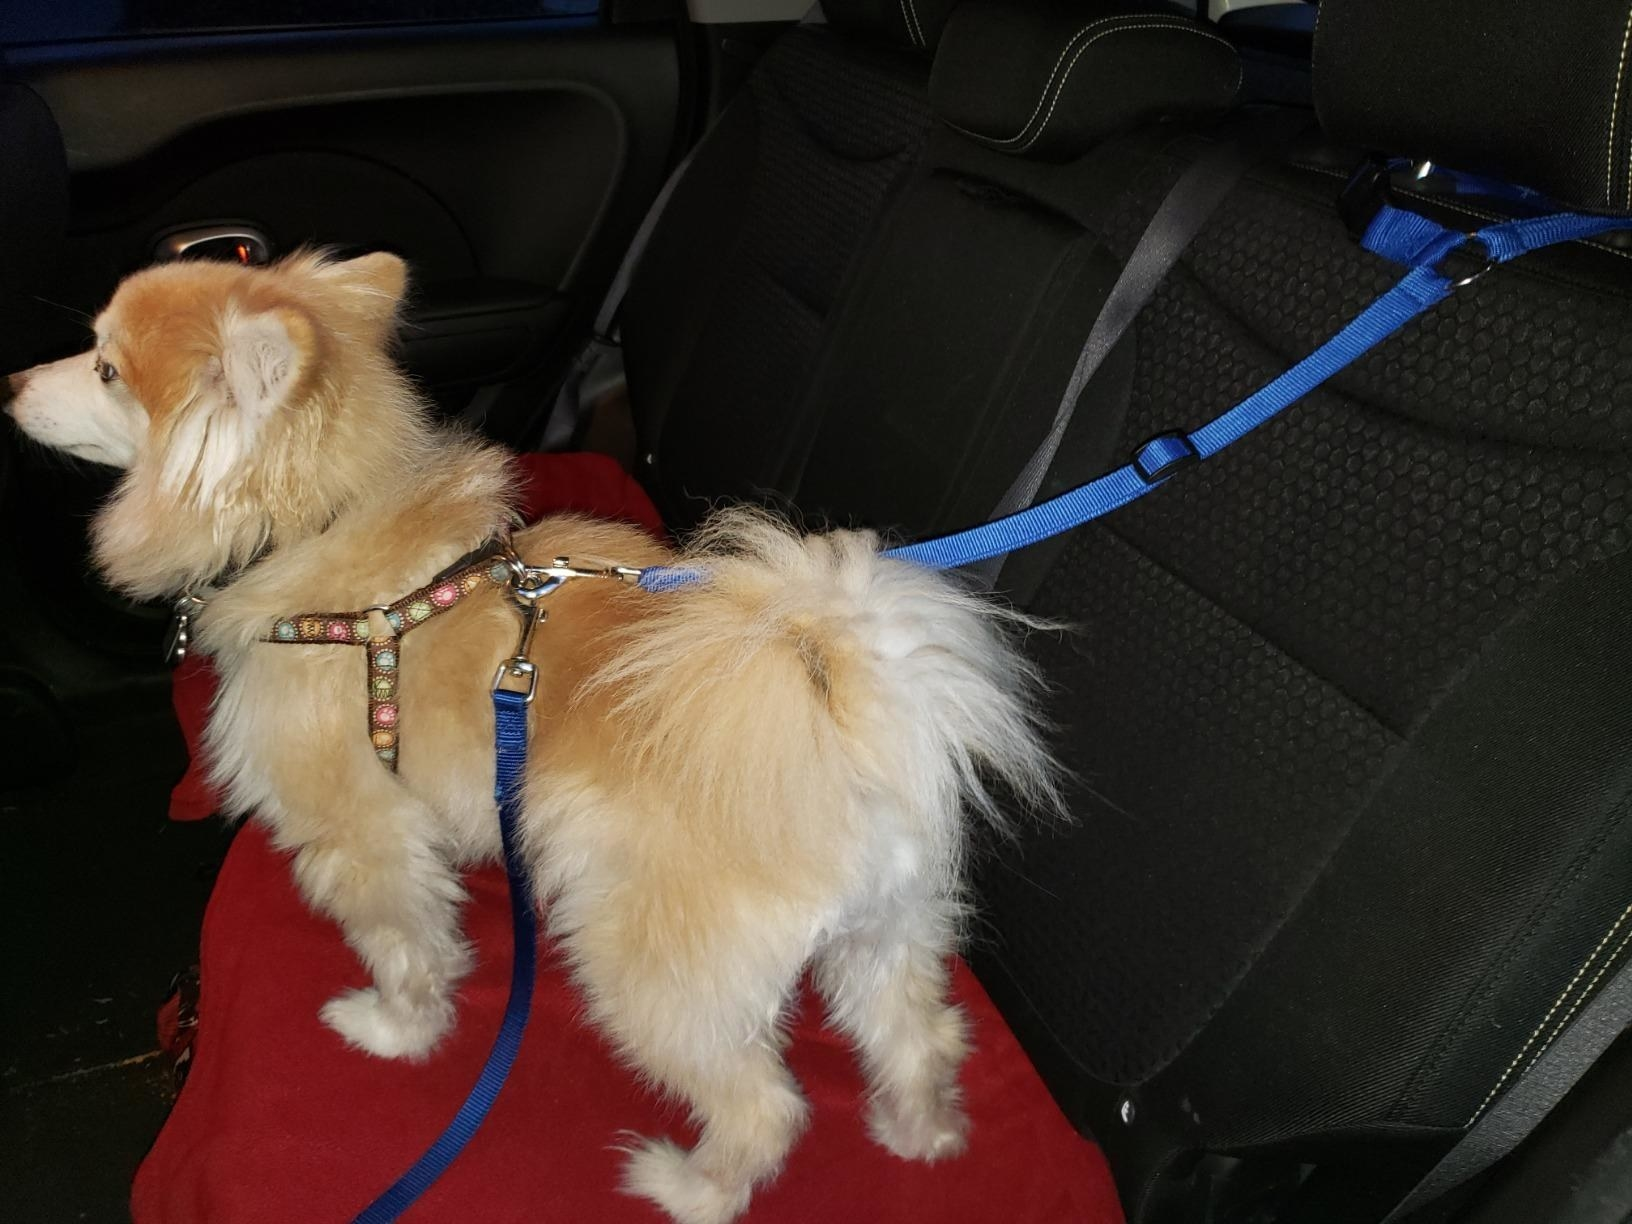 Dog with blue safety strap in car